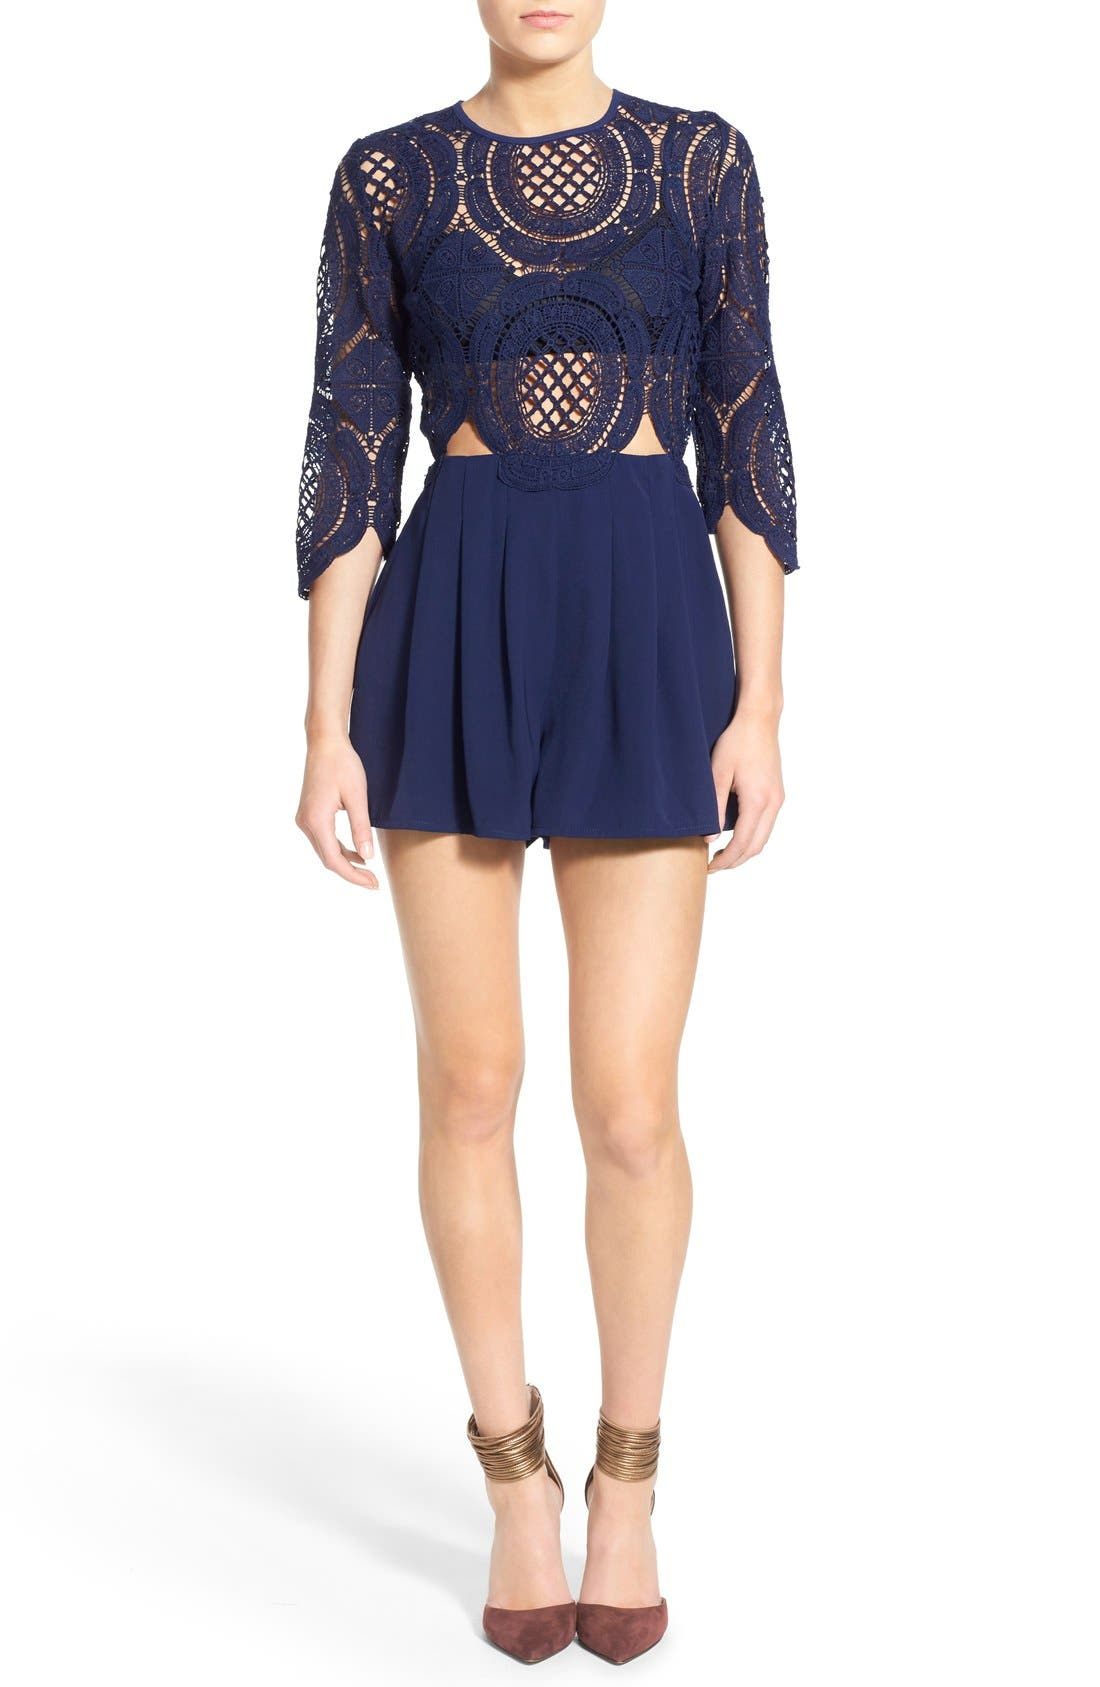 Alternate Image 1 Selected - Missguided Crochet Lace Romper